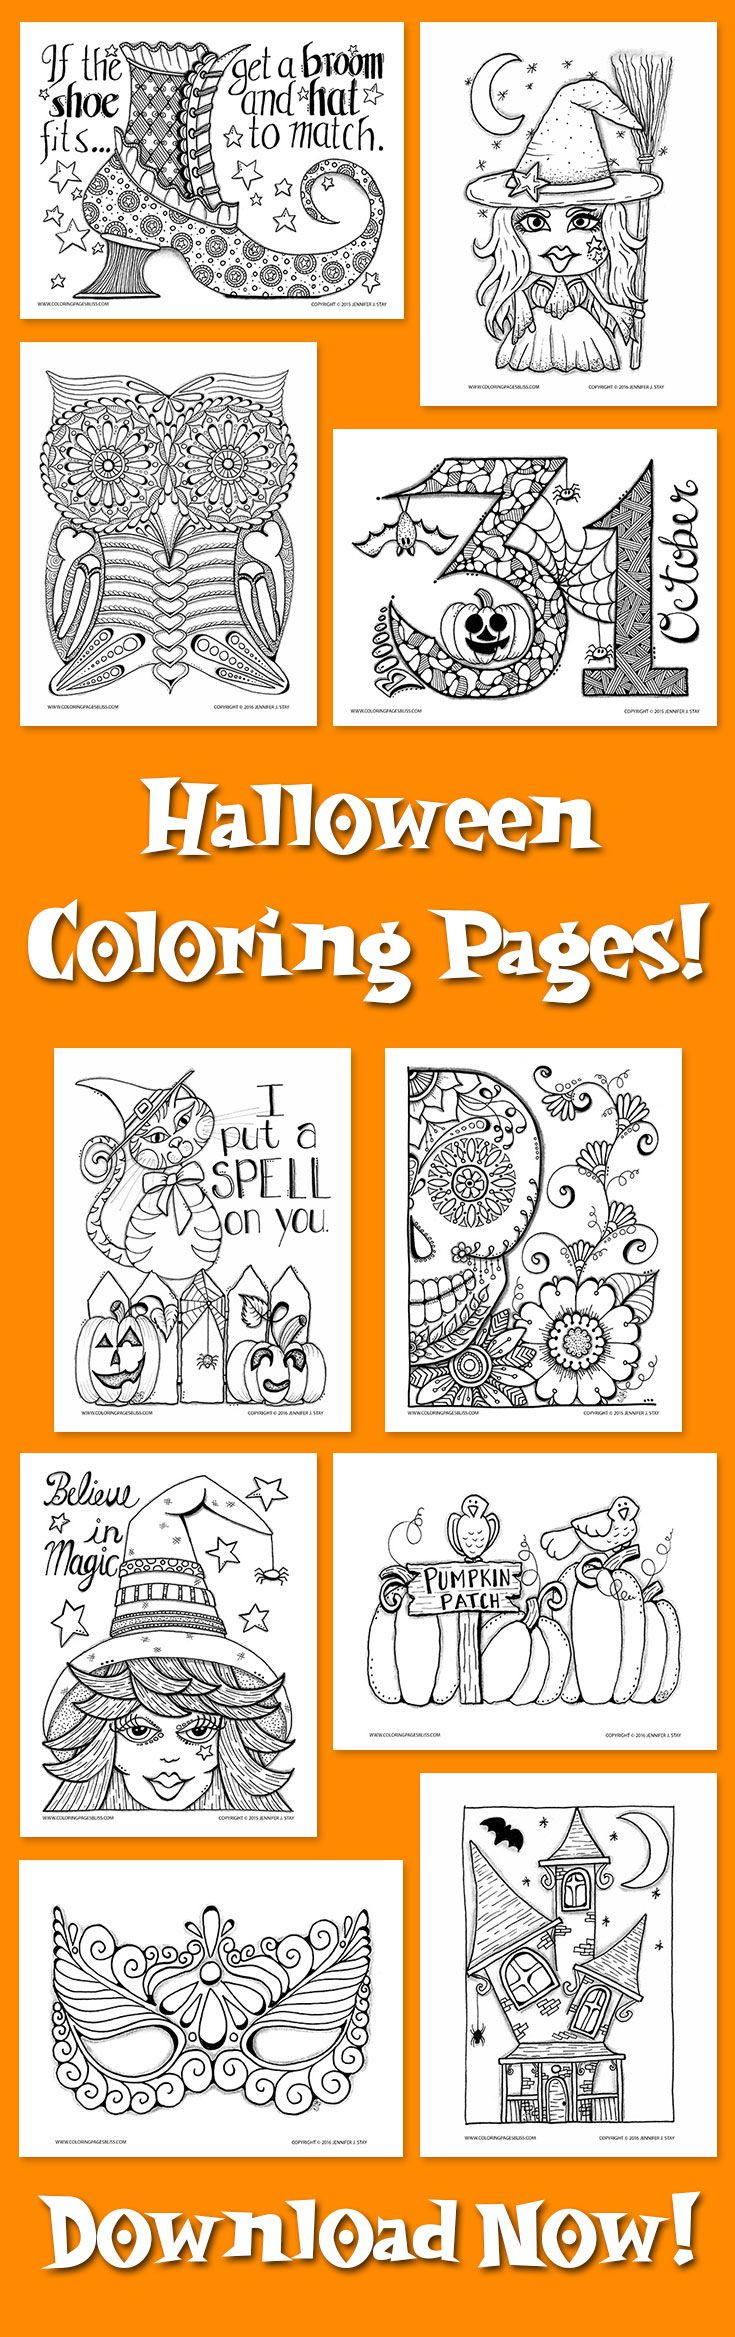 The coloring book project 2 download - Halloween Coloring Pages For Adults These Hand Drawn Coloring Pages Are Downloadable And Fun To